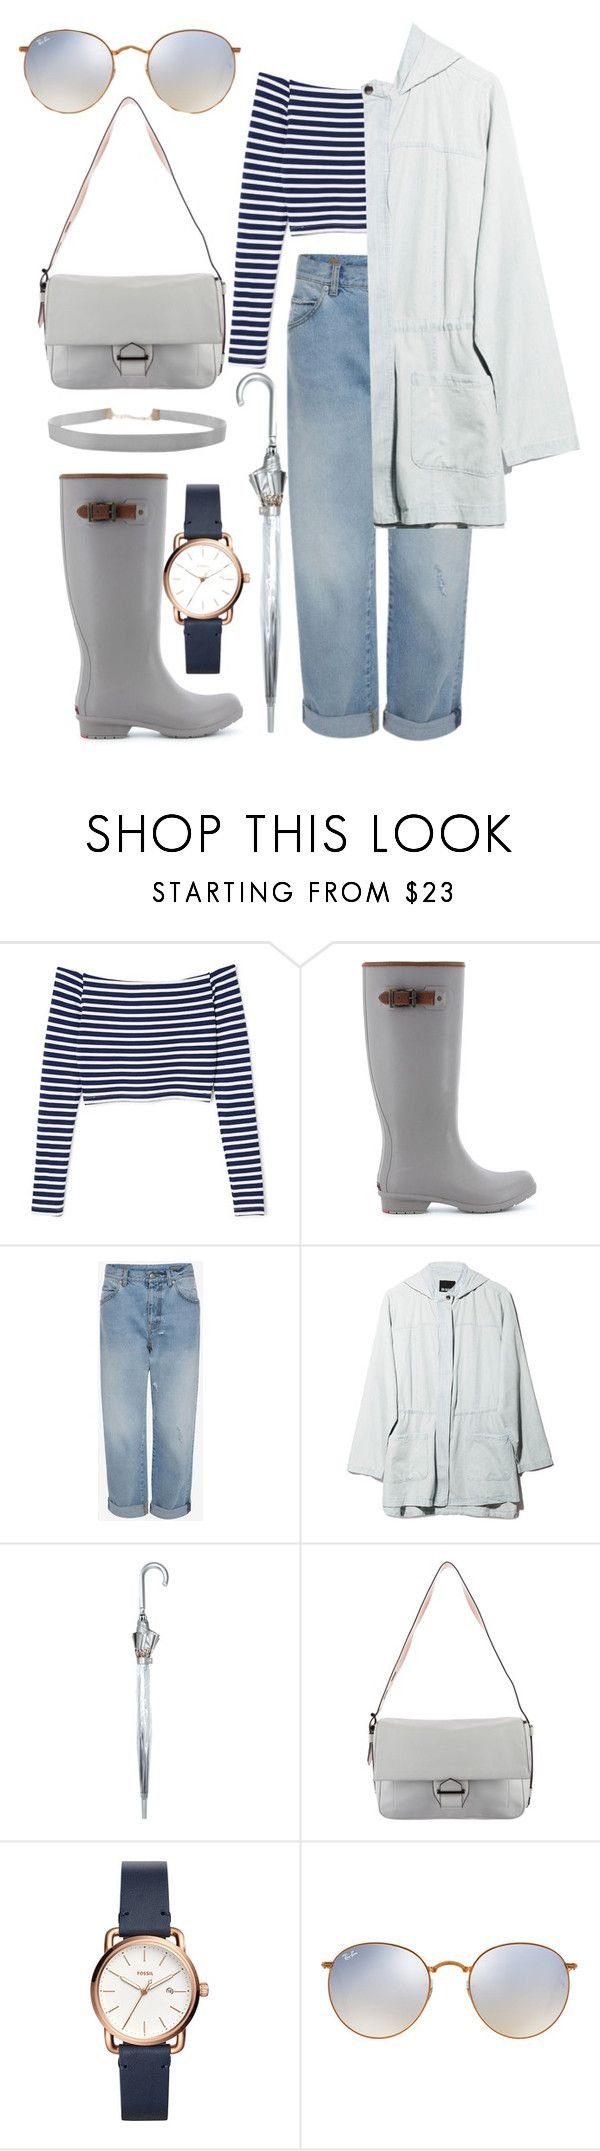 """Rainy Day Blues"" by khriseus ❤ liked on Polyvore featuring Chooka, BB Dakota, Fulton, Reed Krakoff, FOSSIL, Ray-Ban, Humble Chic, rainyday and plus size clothing"